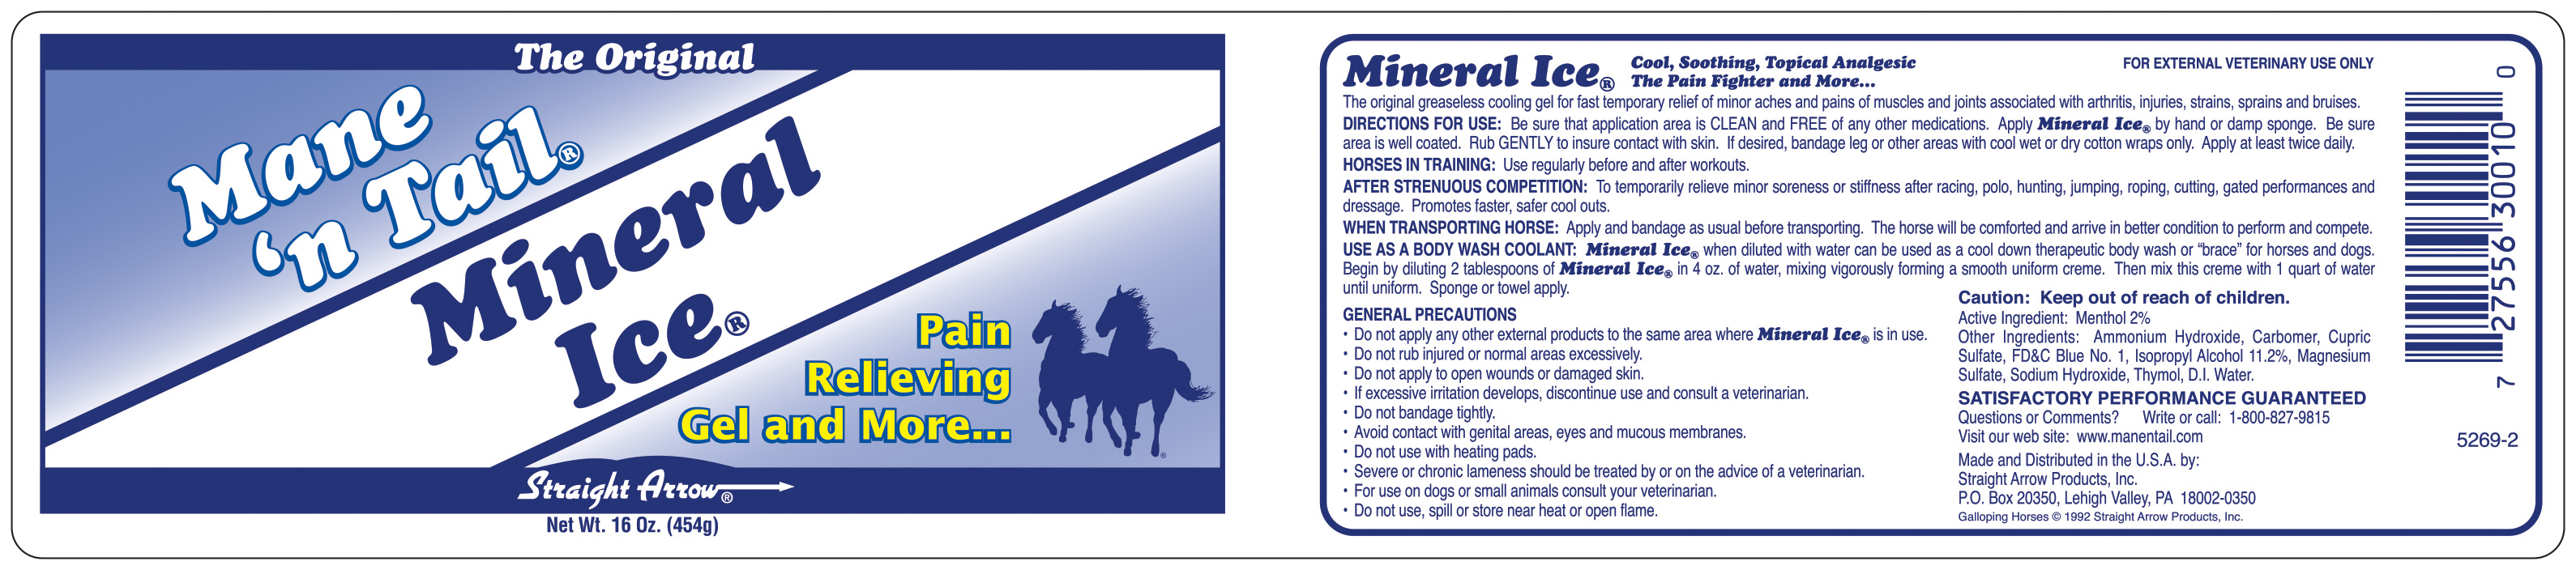 Image of Mineral Ice Label